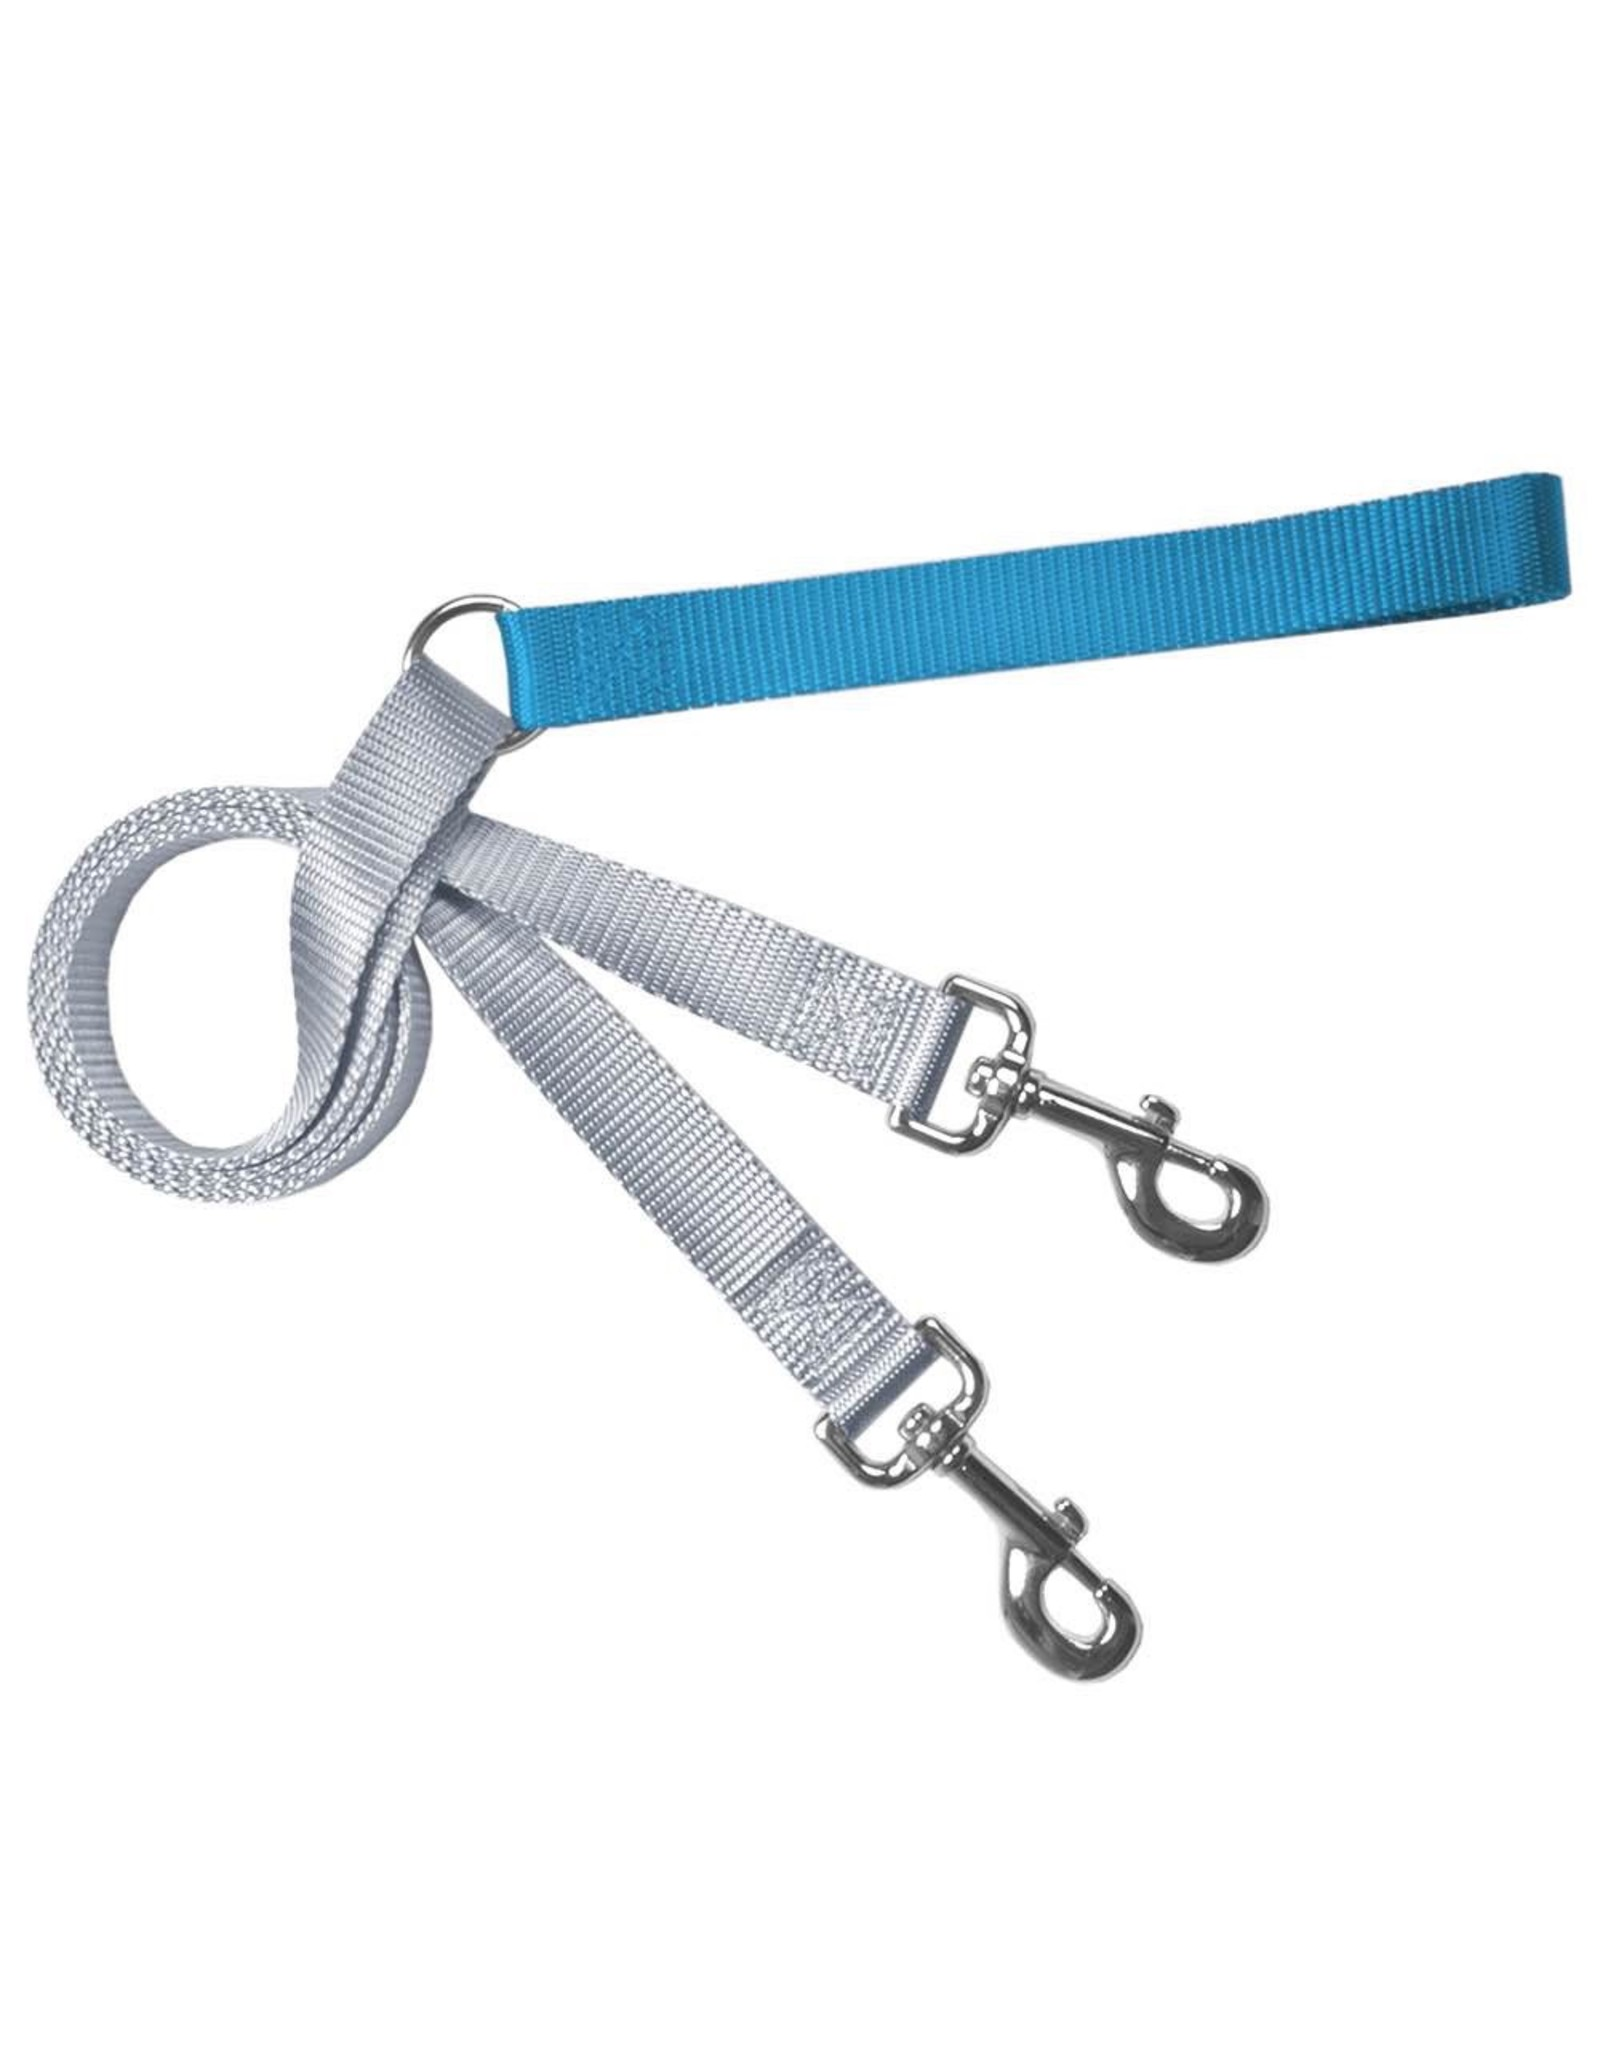 2 Hounds Design Double Connection Training Lead: Turquoise, 1